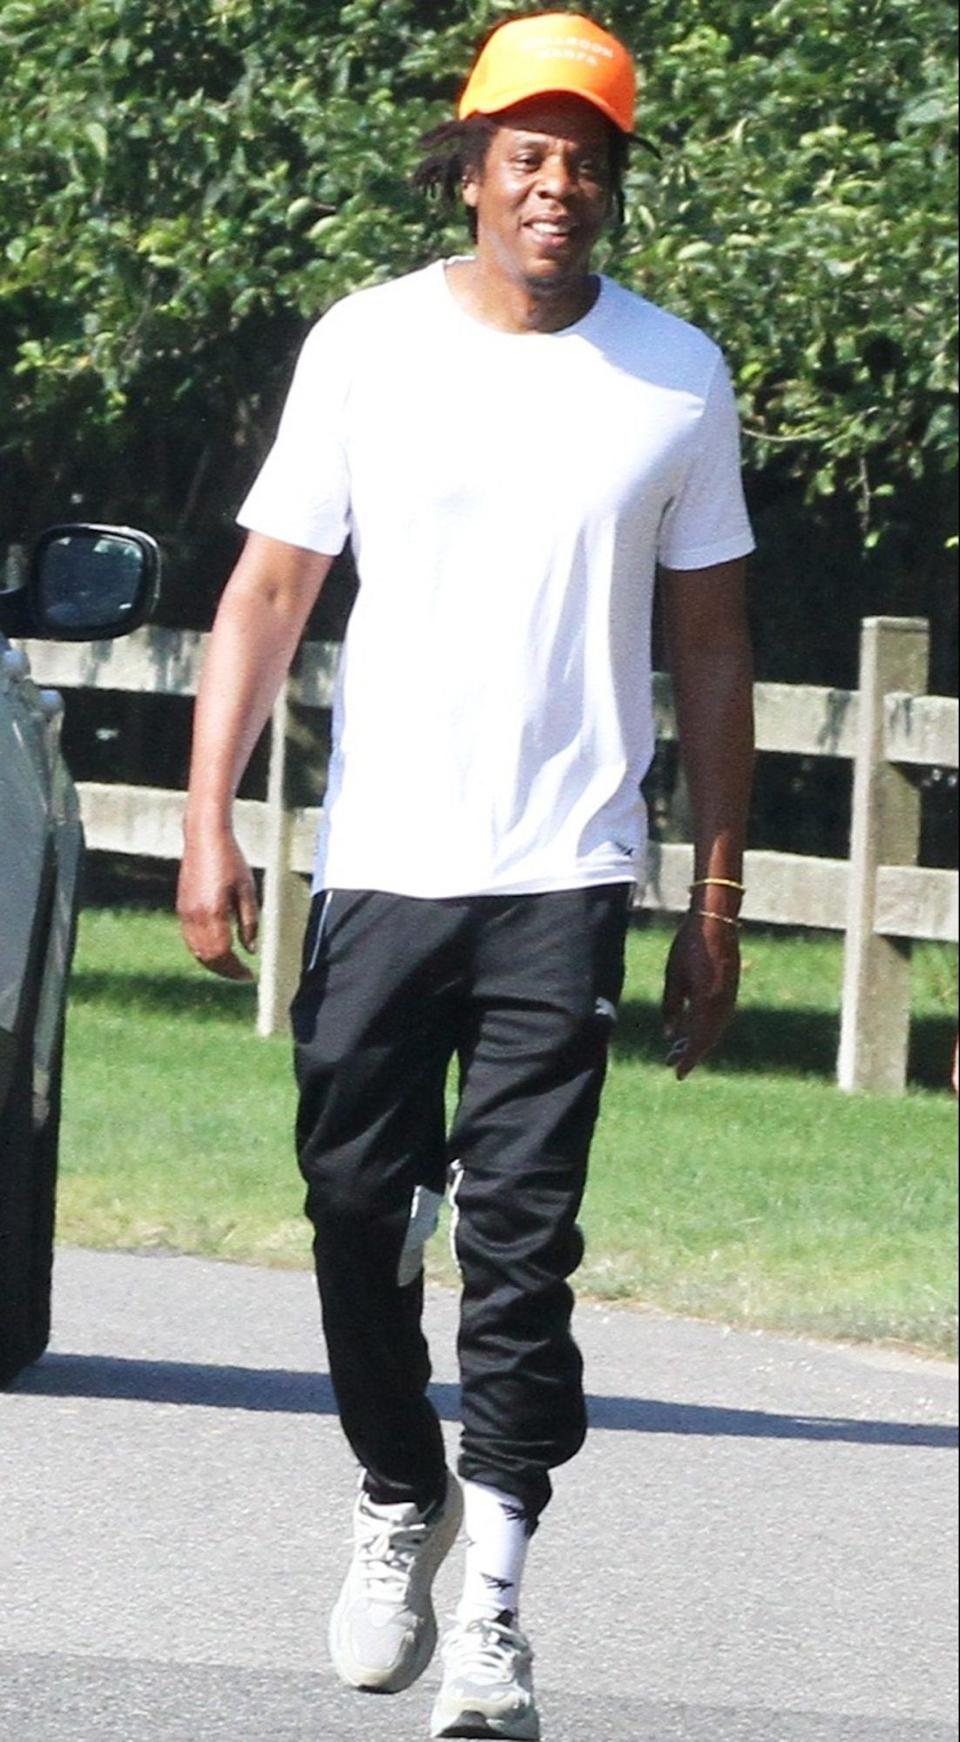 <p>JAY-Z takes a walk through The Hamptons, New York, wearing a white tee and track pants on Wednesday.</p>